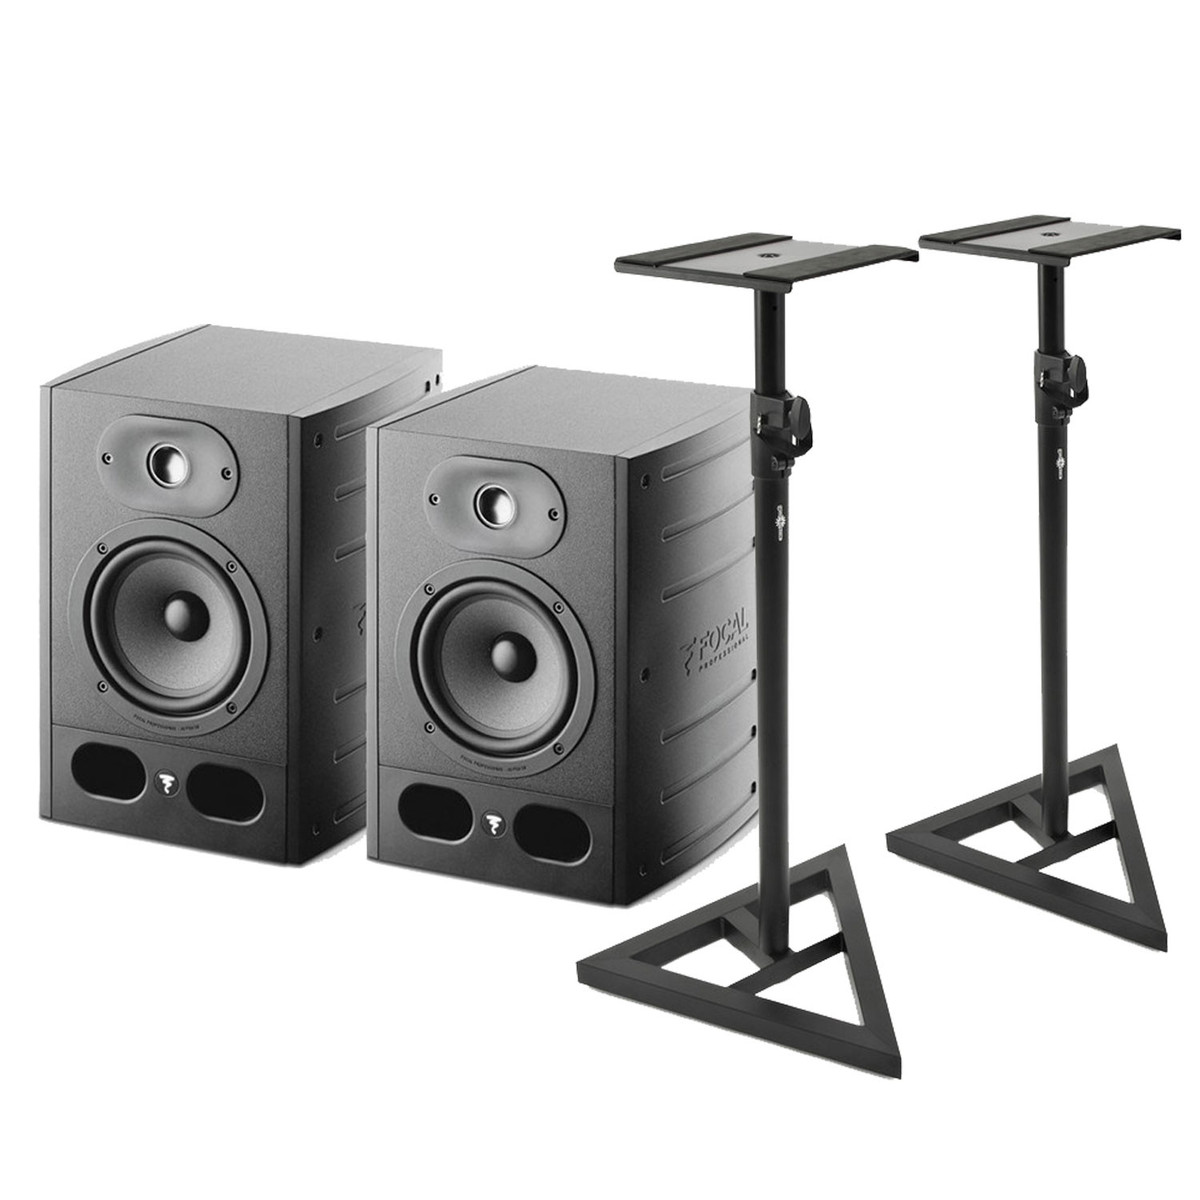 Image of Focal Alpha 50 Active Studio Monitors (Pair) Includes Stands